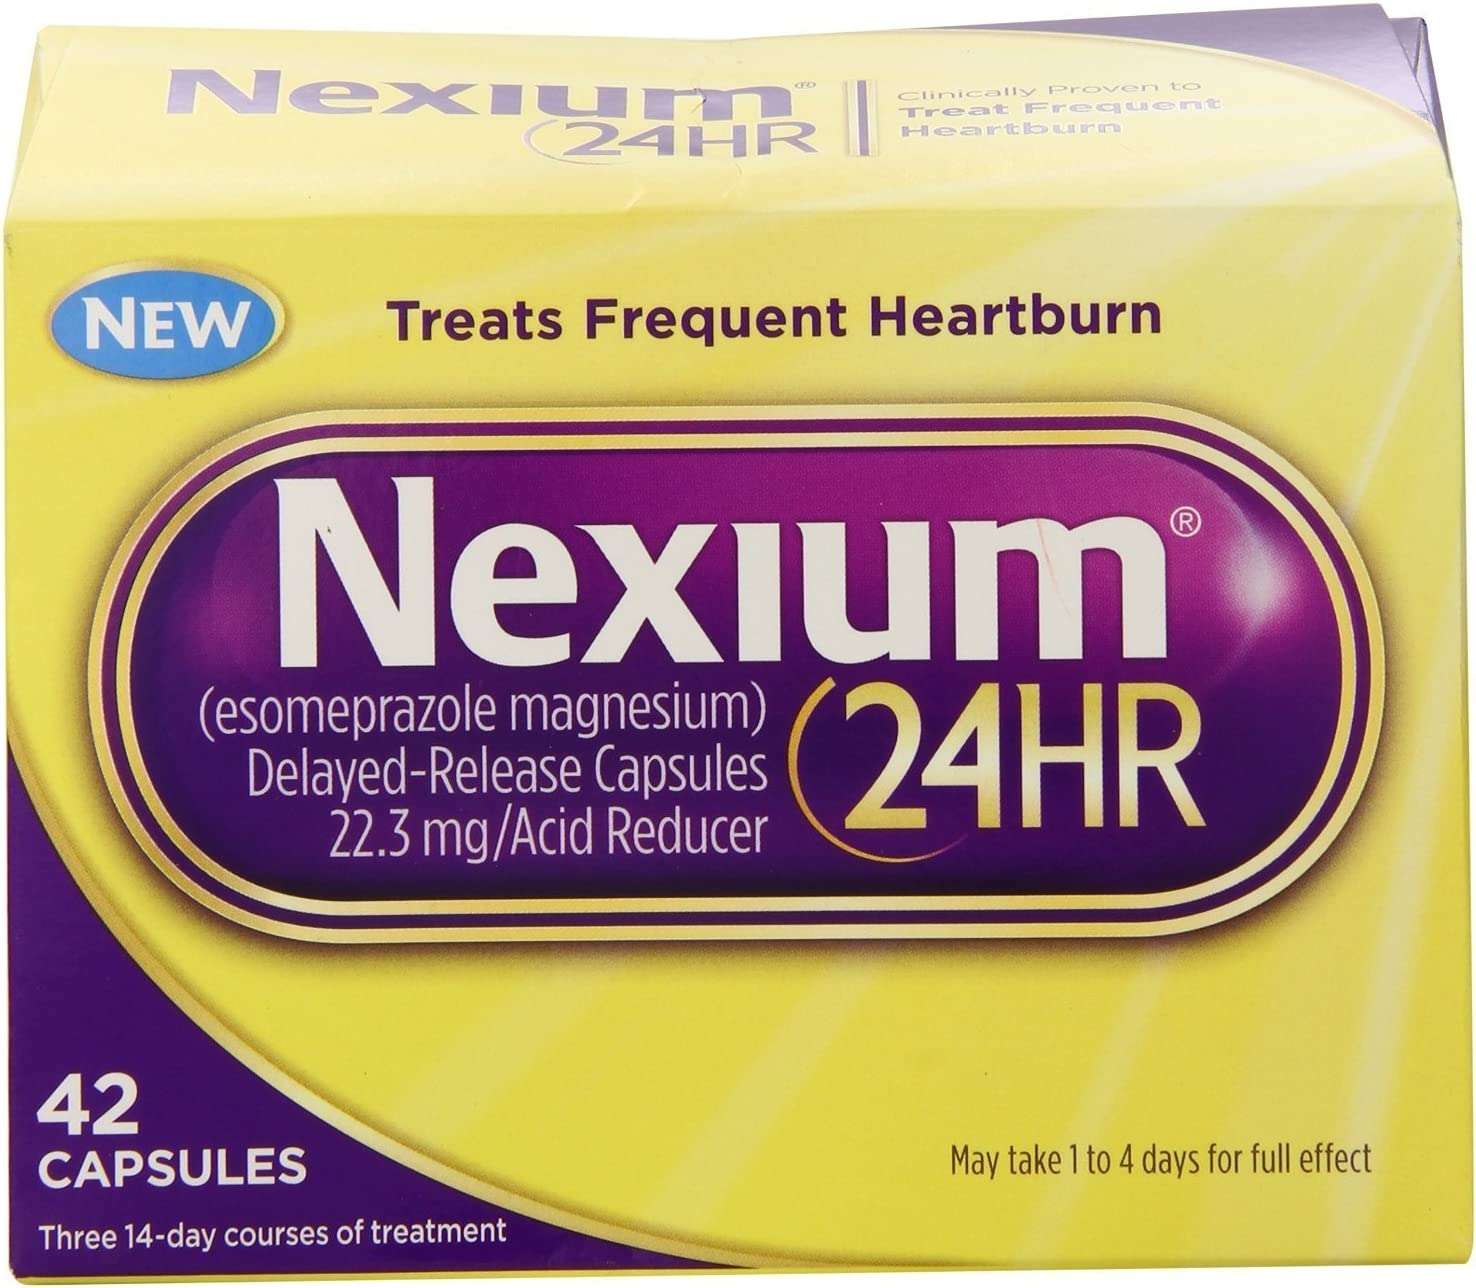 Nexium 24HR Recommended Capsules 42 Pack service 2 Count of